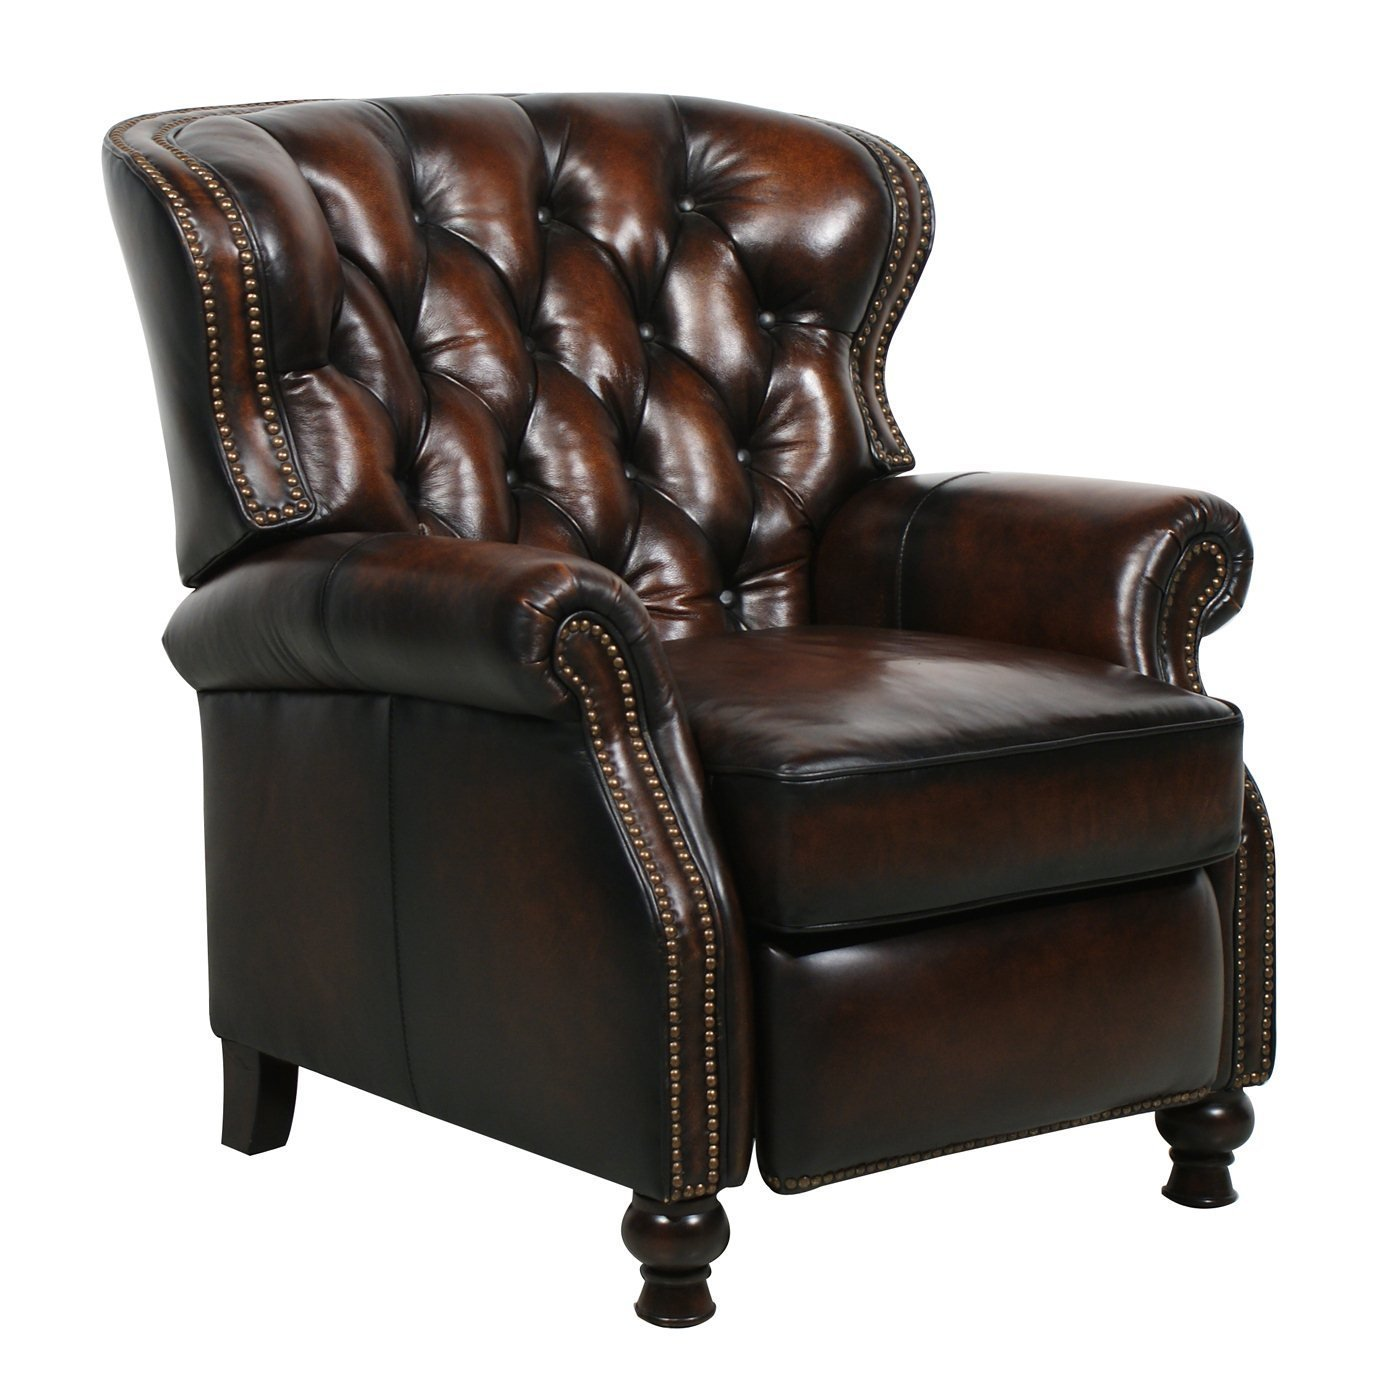 BarcaLounger Presidential II Recliner Chair - Stetson Coffee